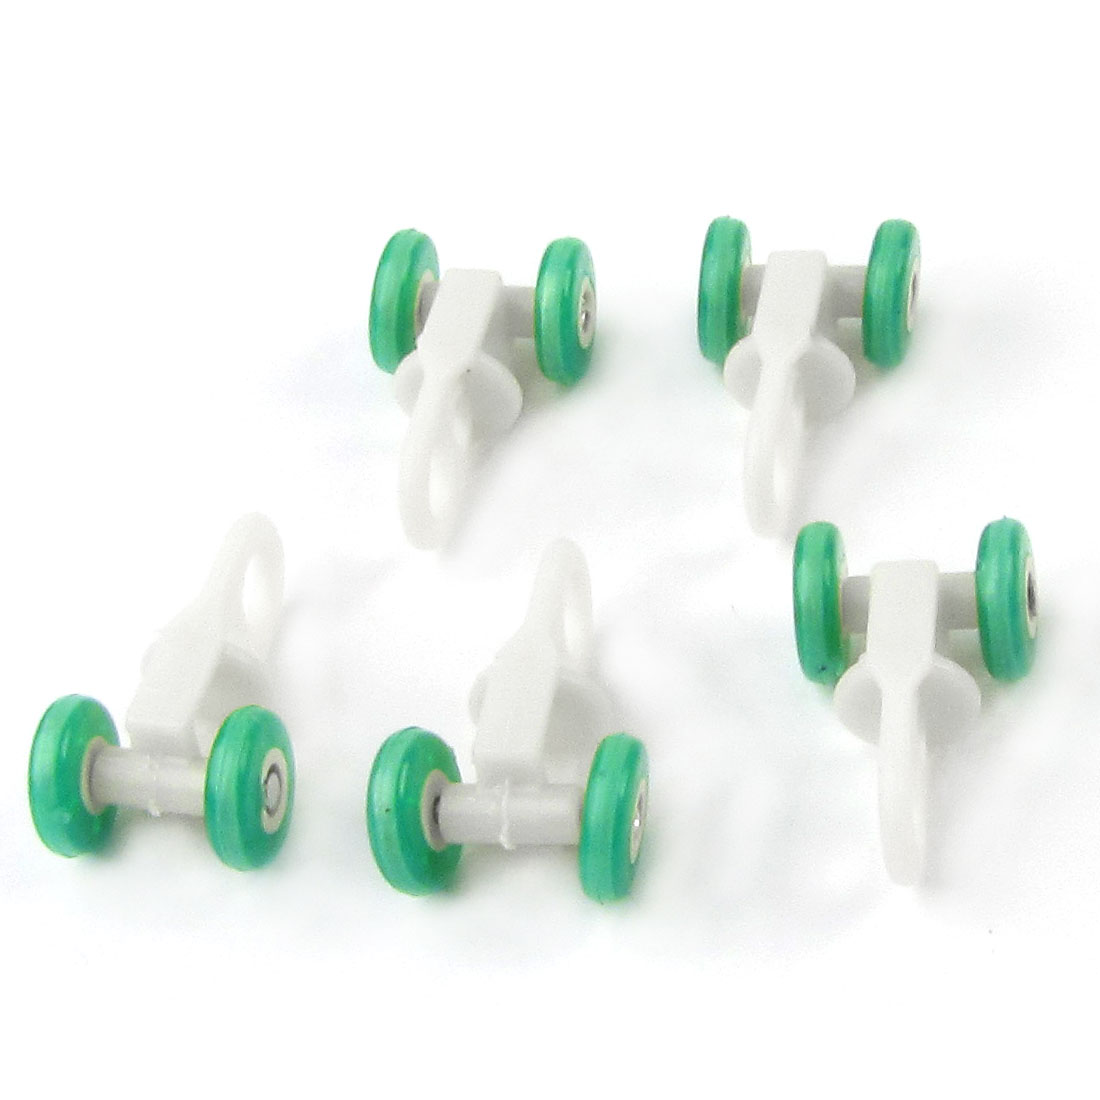 "5 Pcs 0.51"" Dia. Green Plastic Wheels White Curtain Track Rollers"